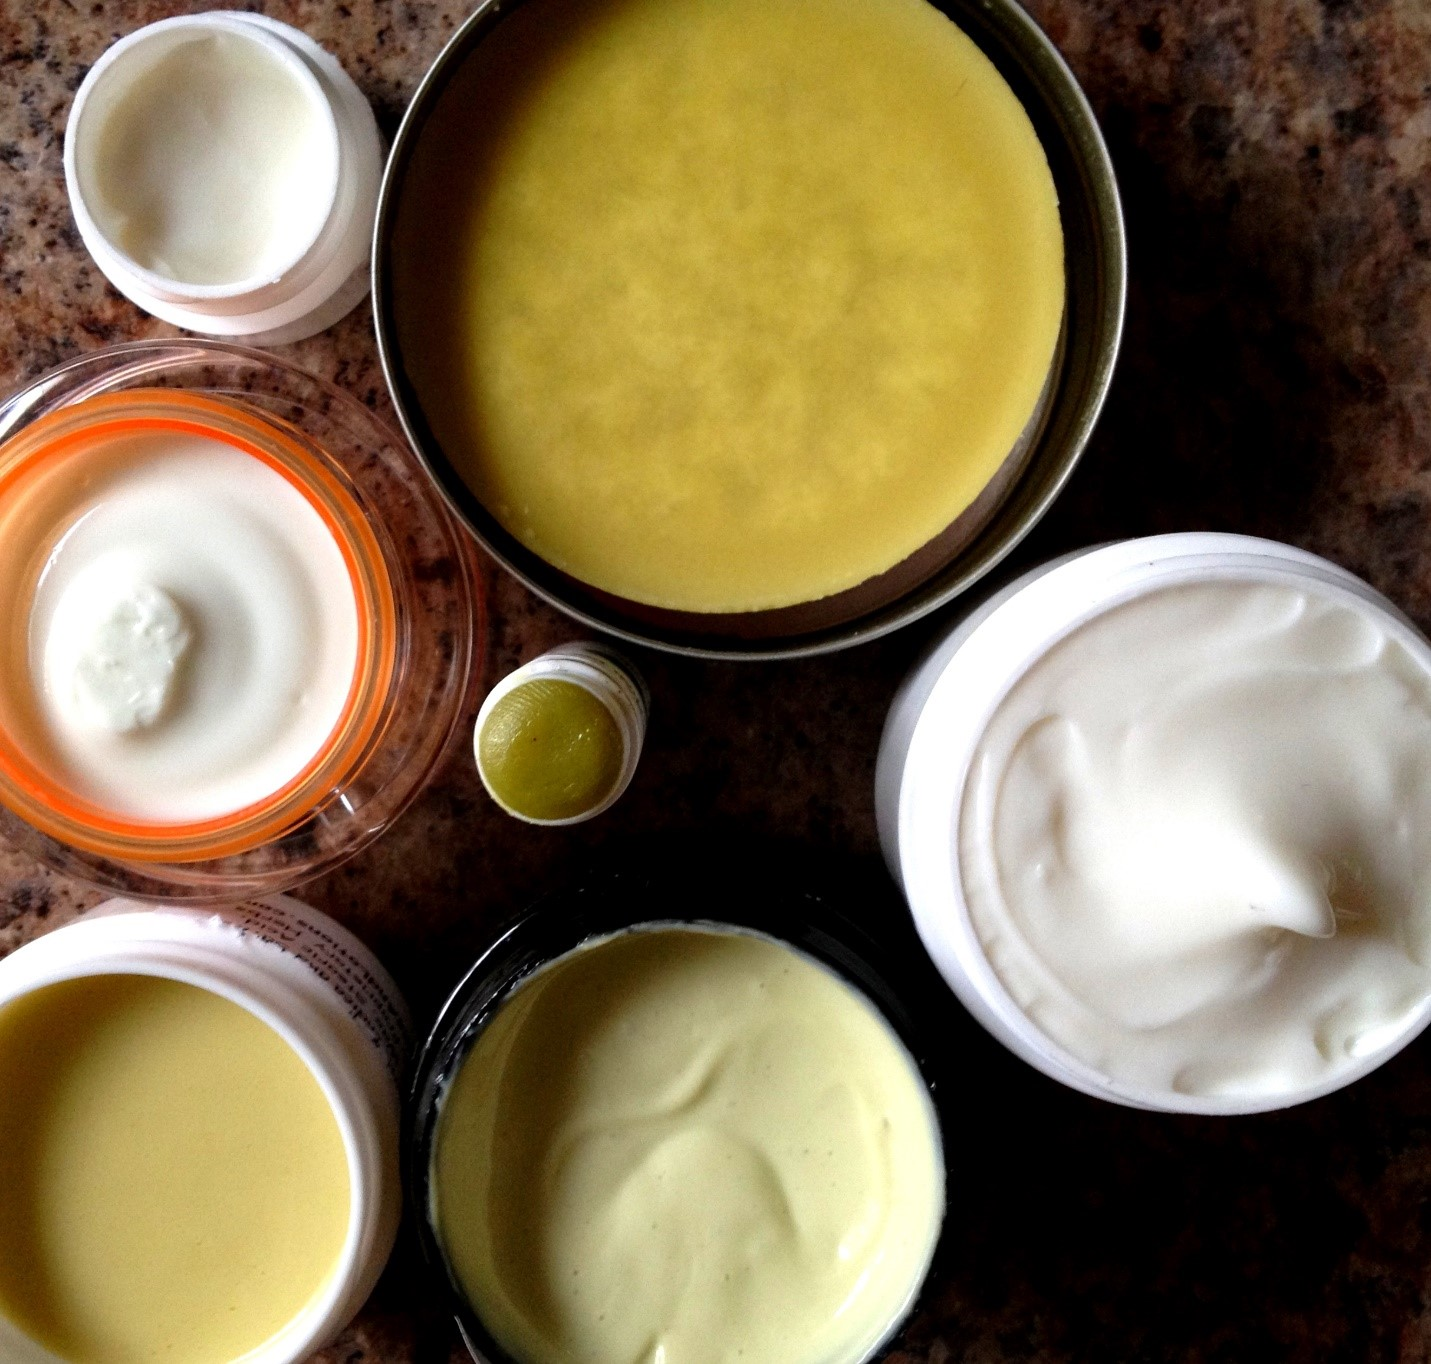 salves are used topically for pain, infection, cuts, bug bites, and more. shown here are a variety, some homemade, some retail. photo: sharon letts